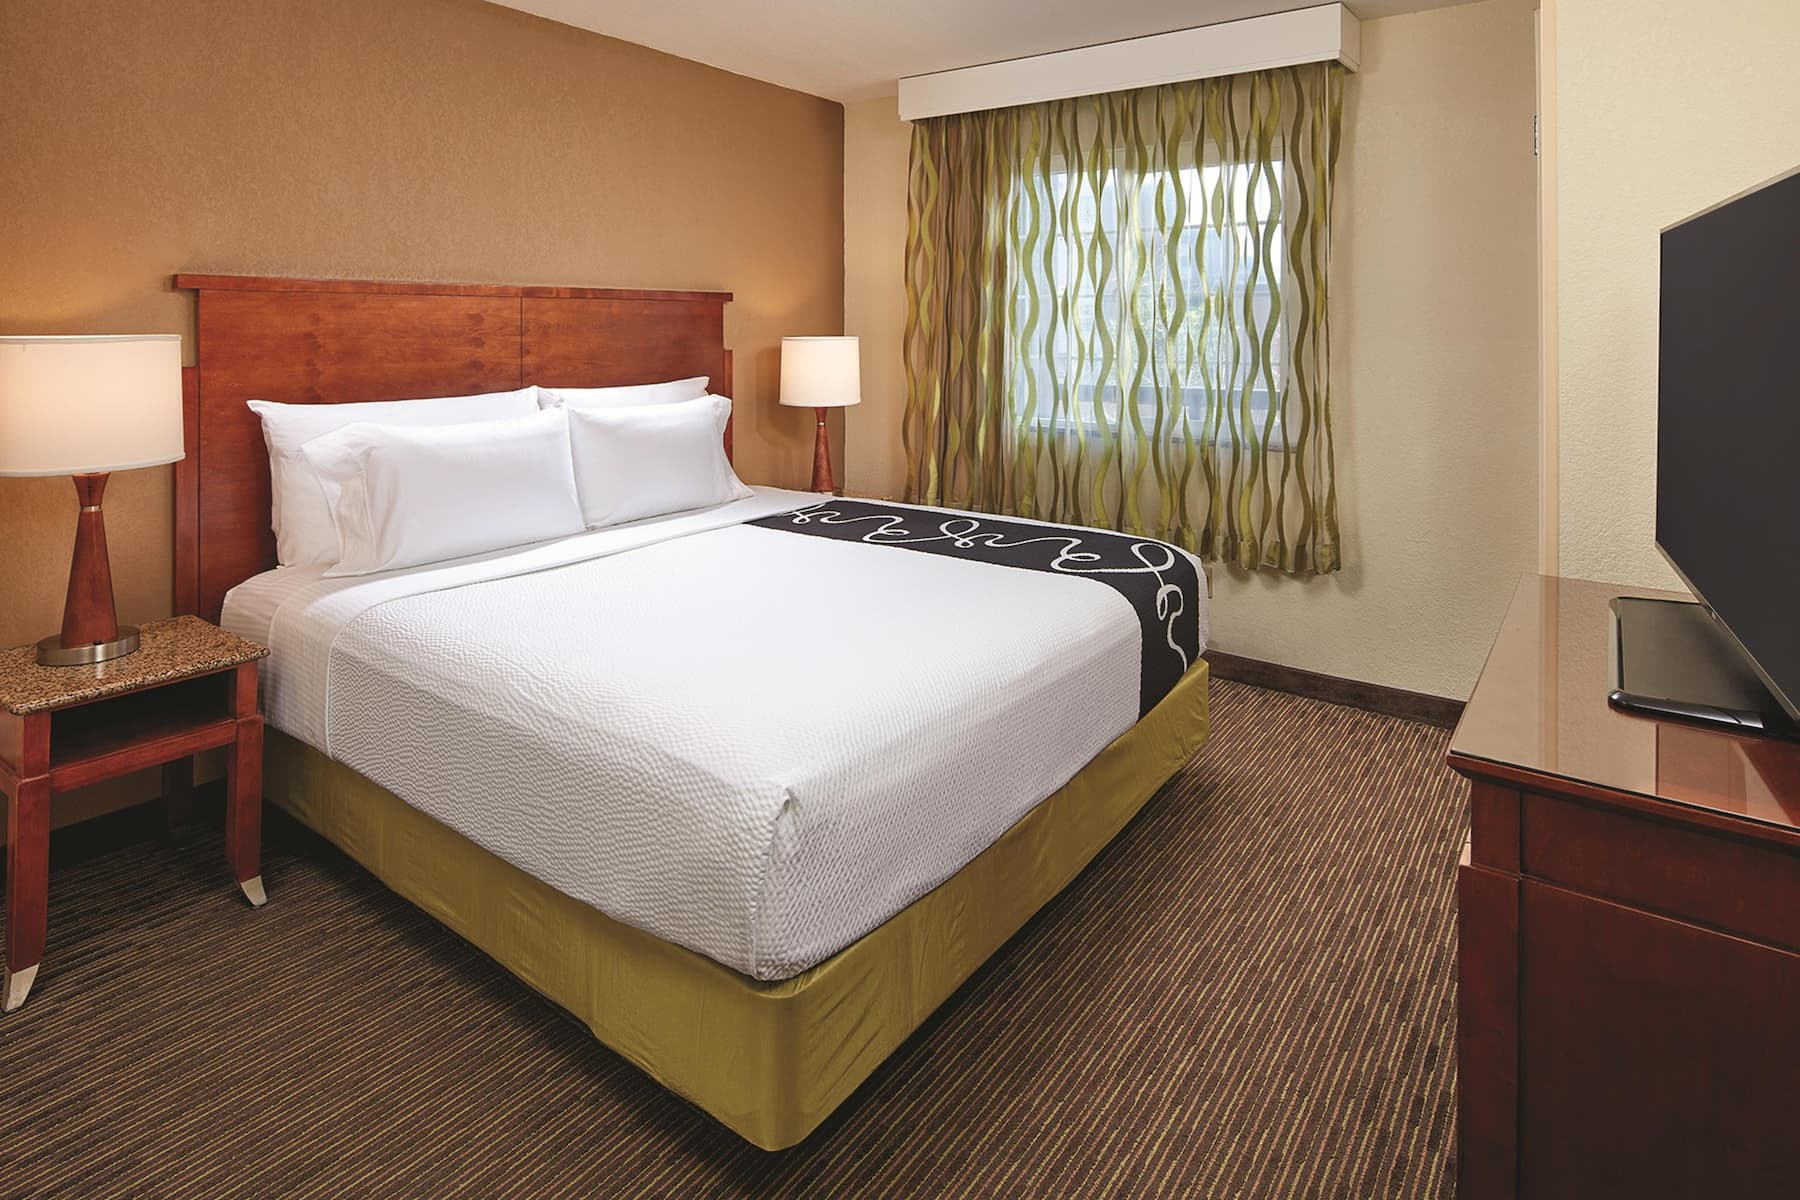 La Quinta Inn & Suites by Wyndham San Diego SeaWorld/Zoo suite in San Diego, California